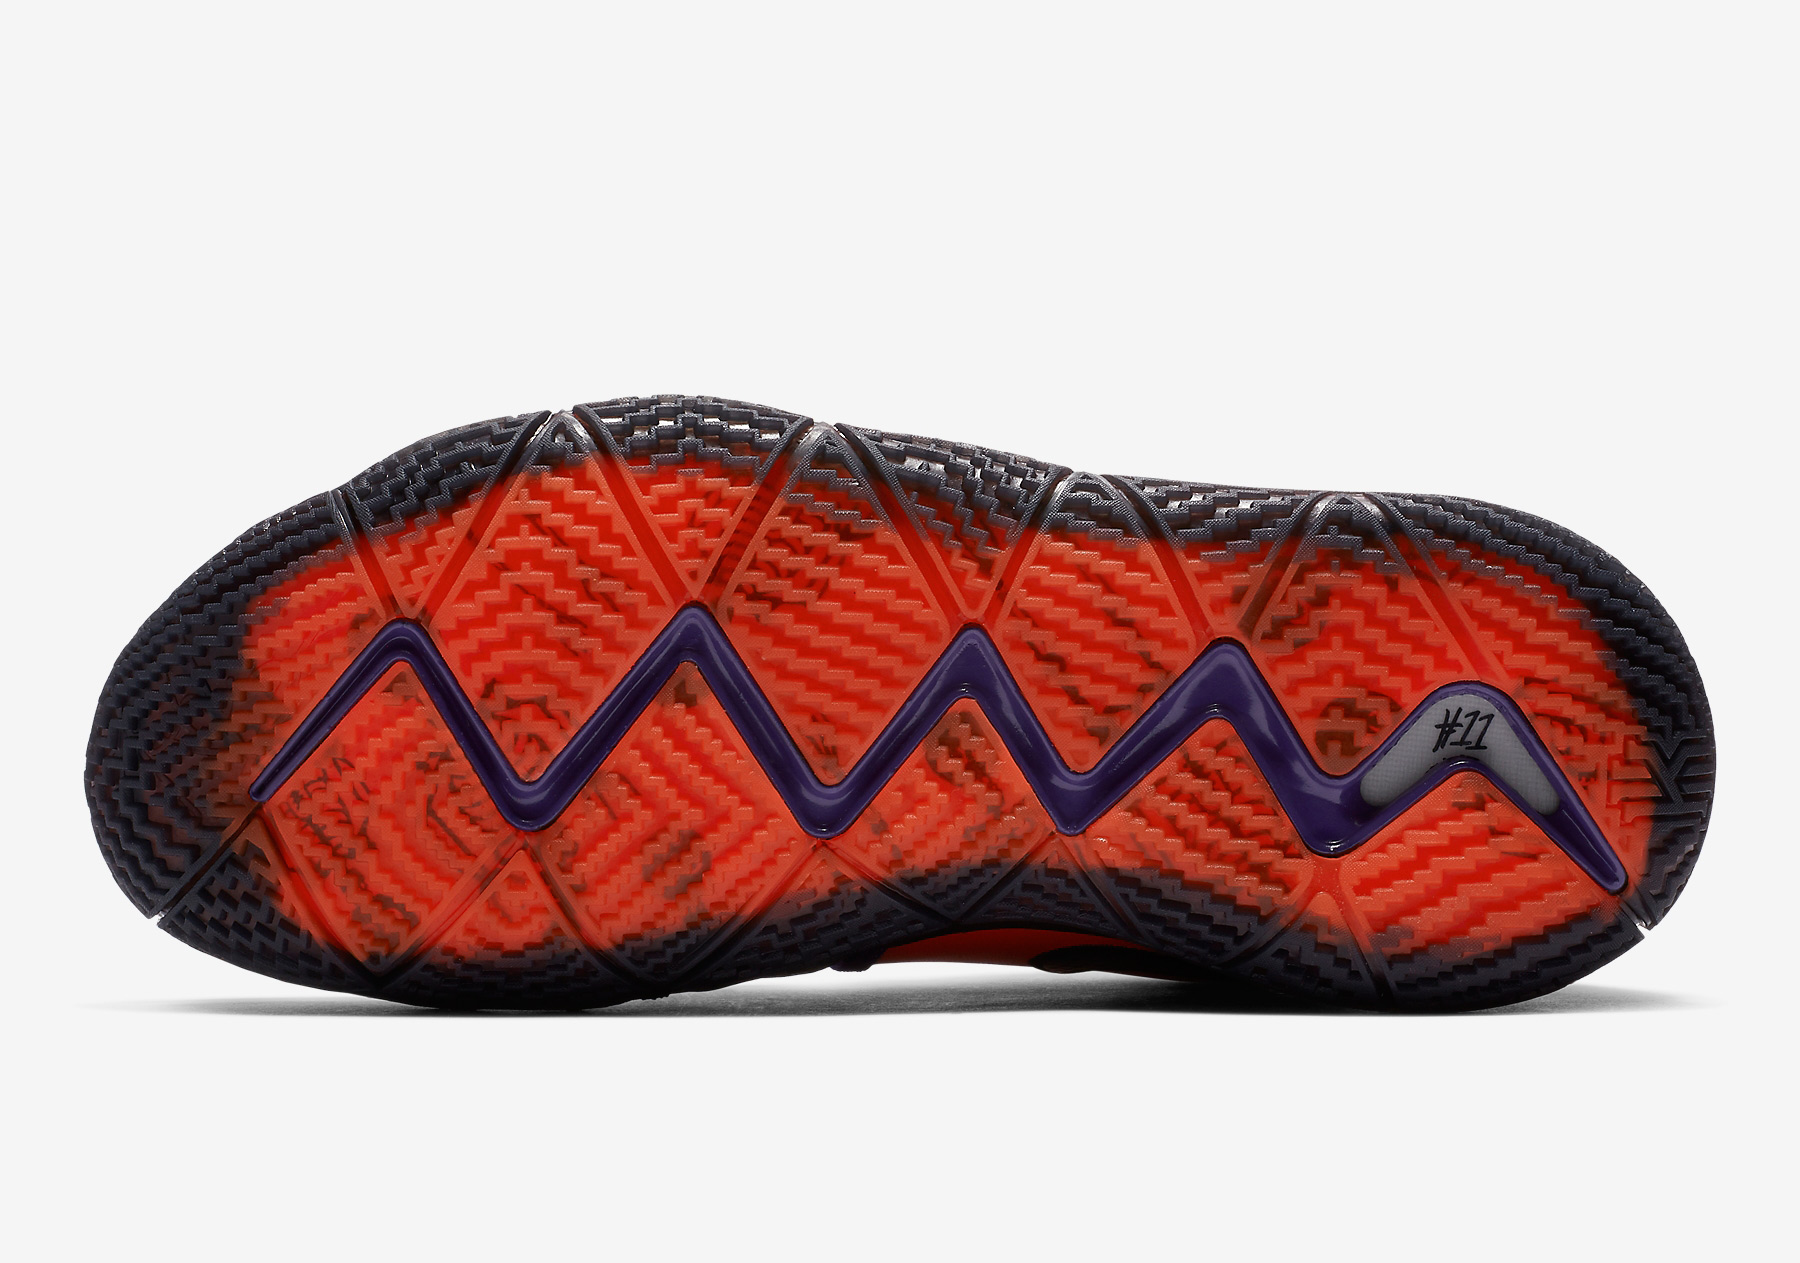 wholesale dealer ae828 0e9c2 Nike Kyrie 4 Day Of The Dead CI0278-800 Release Info   SneakerNews.com